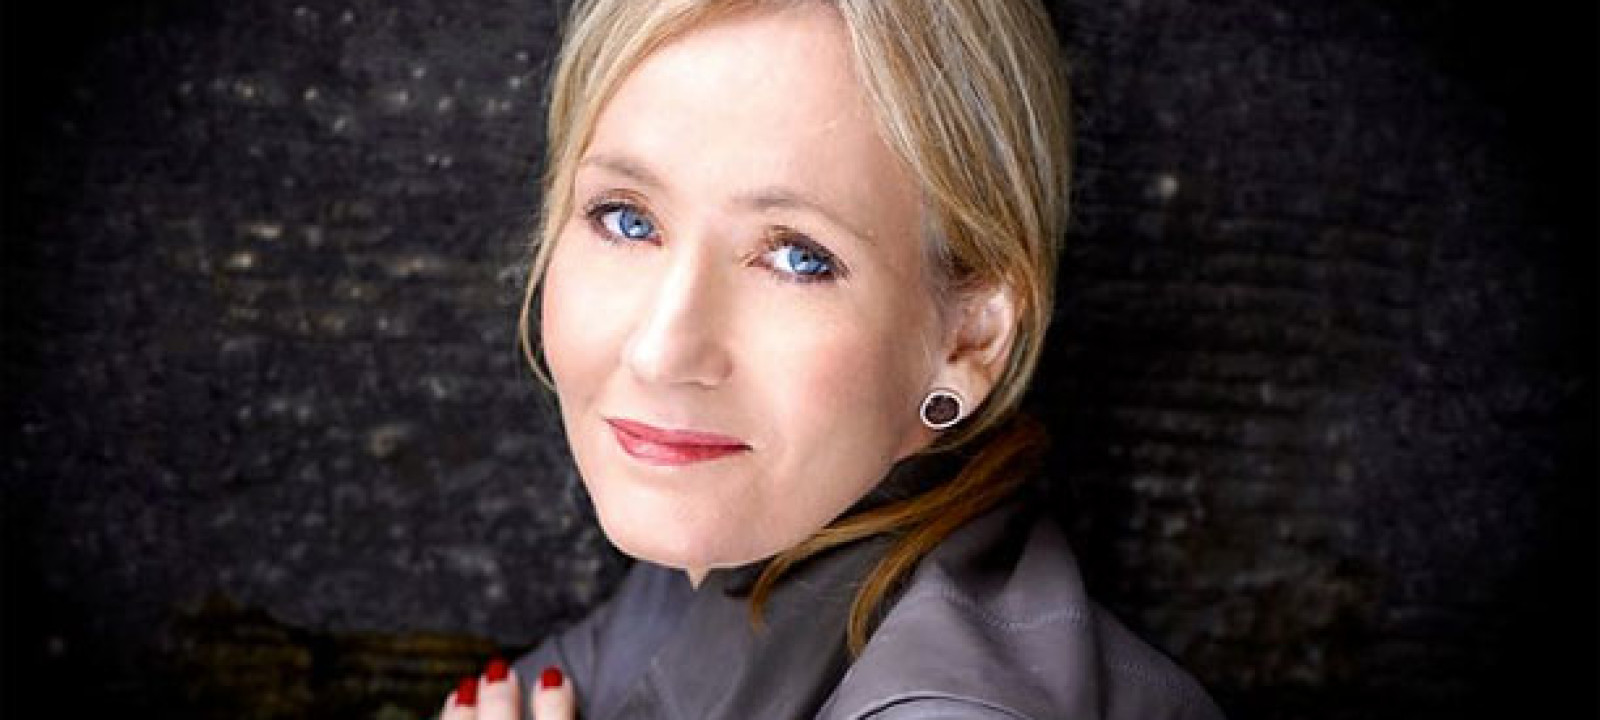 jk rowling with graham norton on radio 2.jpg